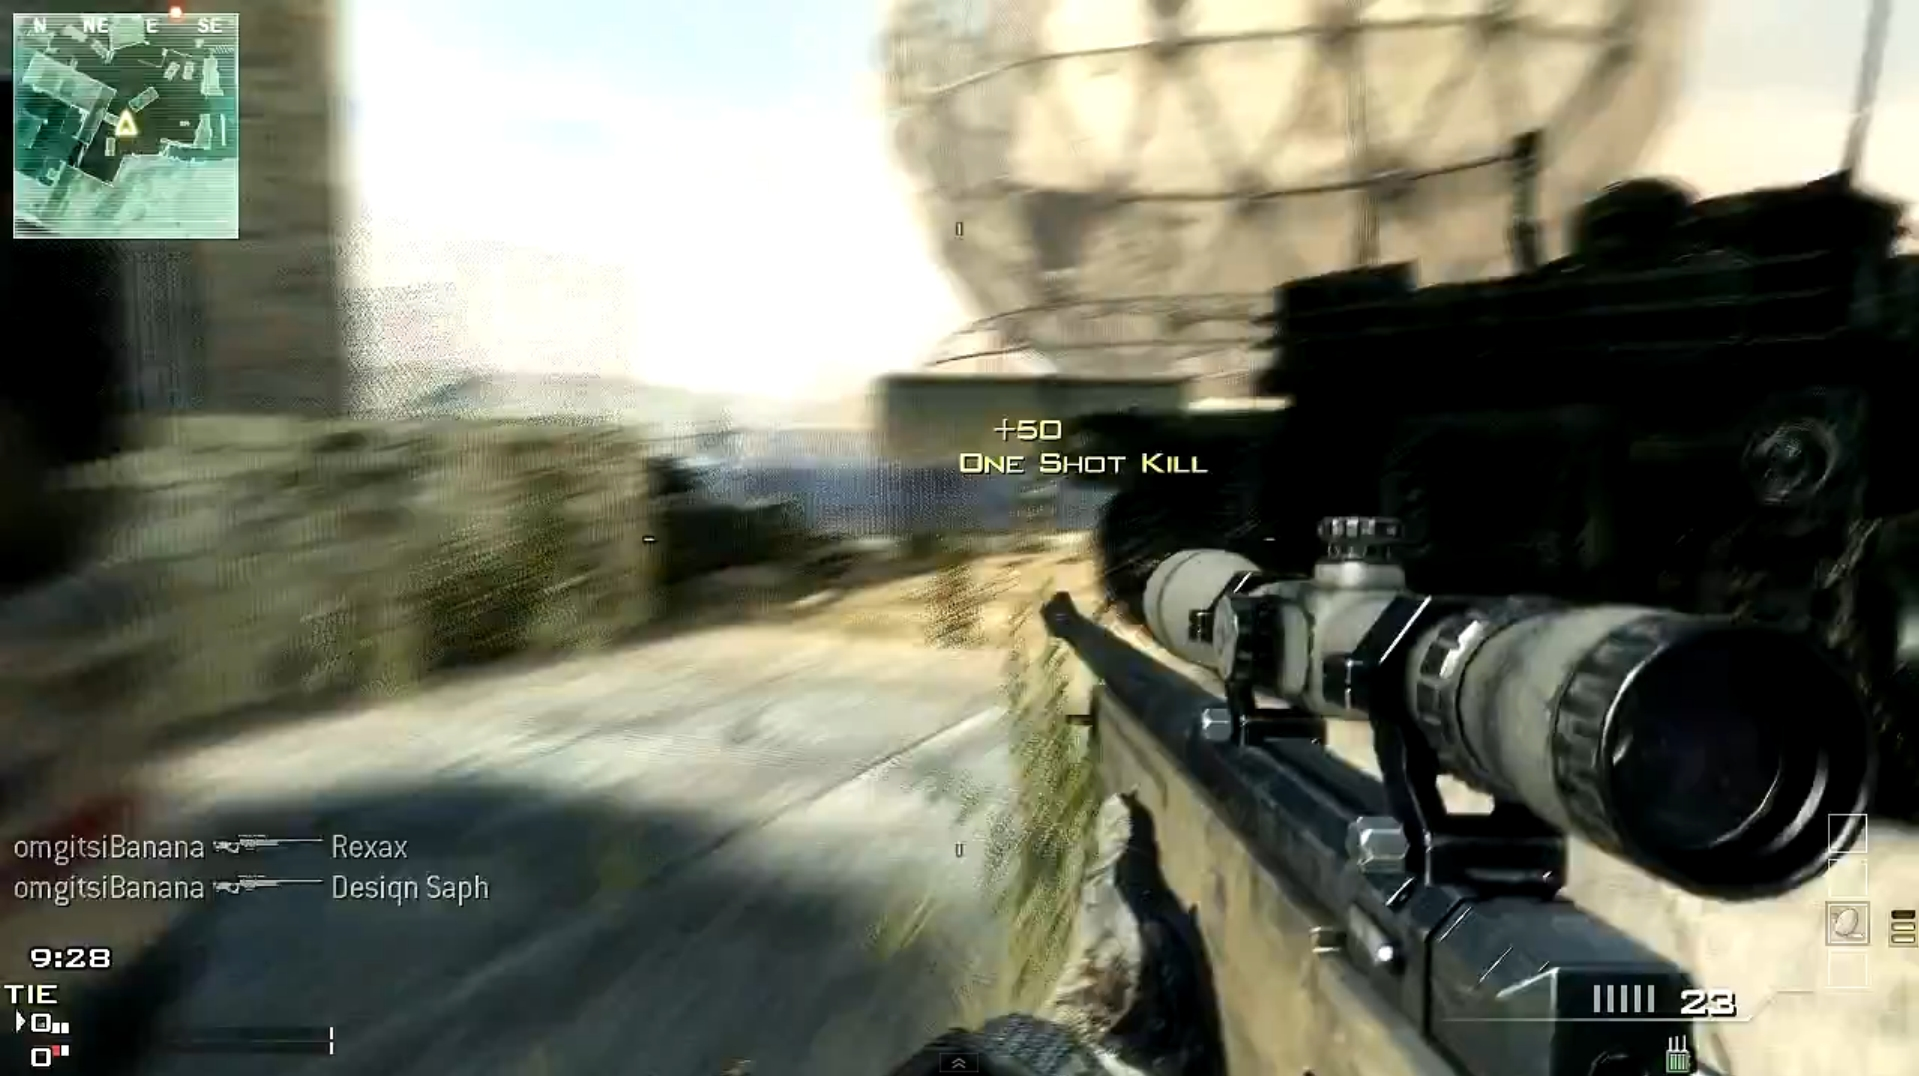 One shot kill sniper mw3